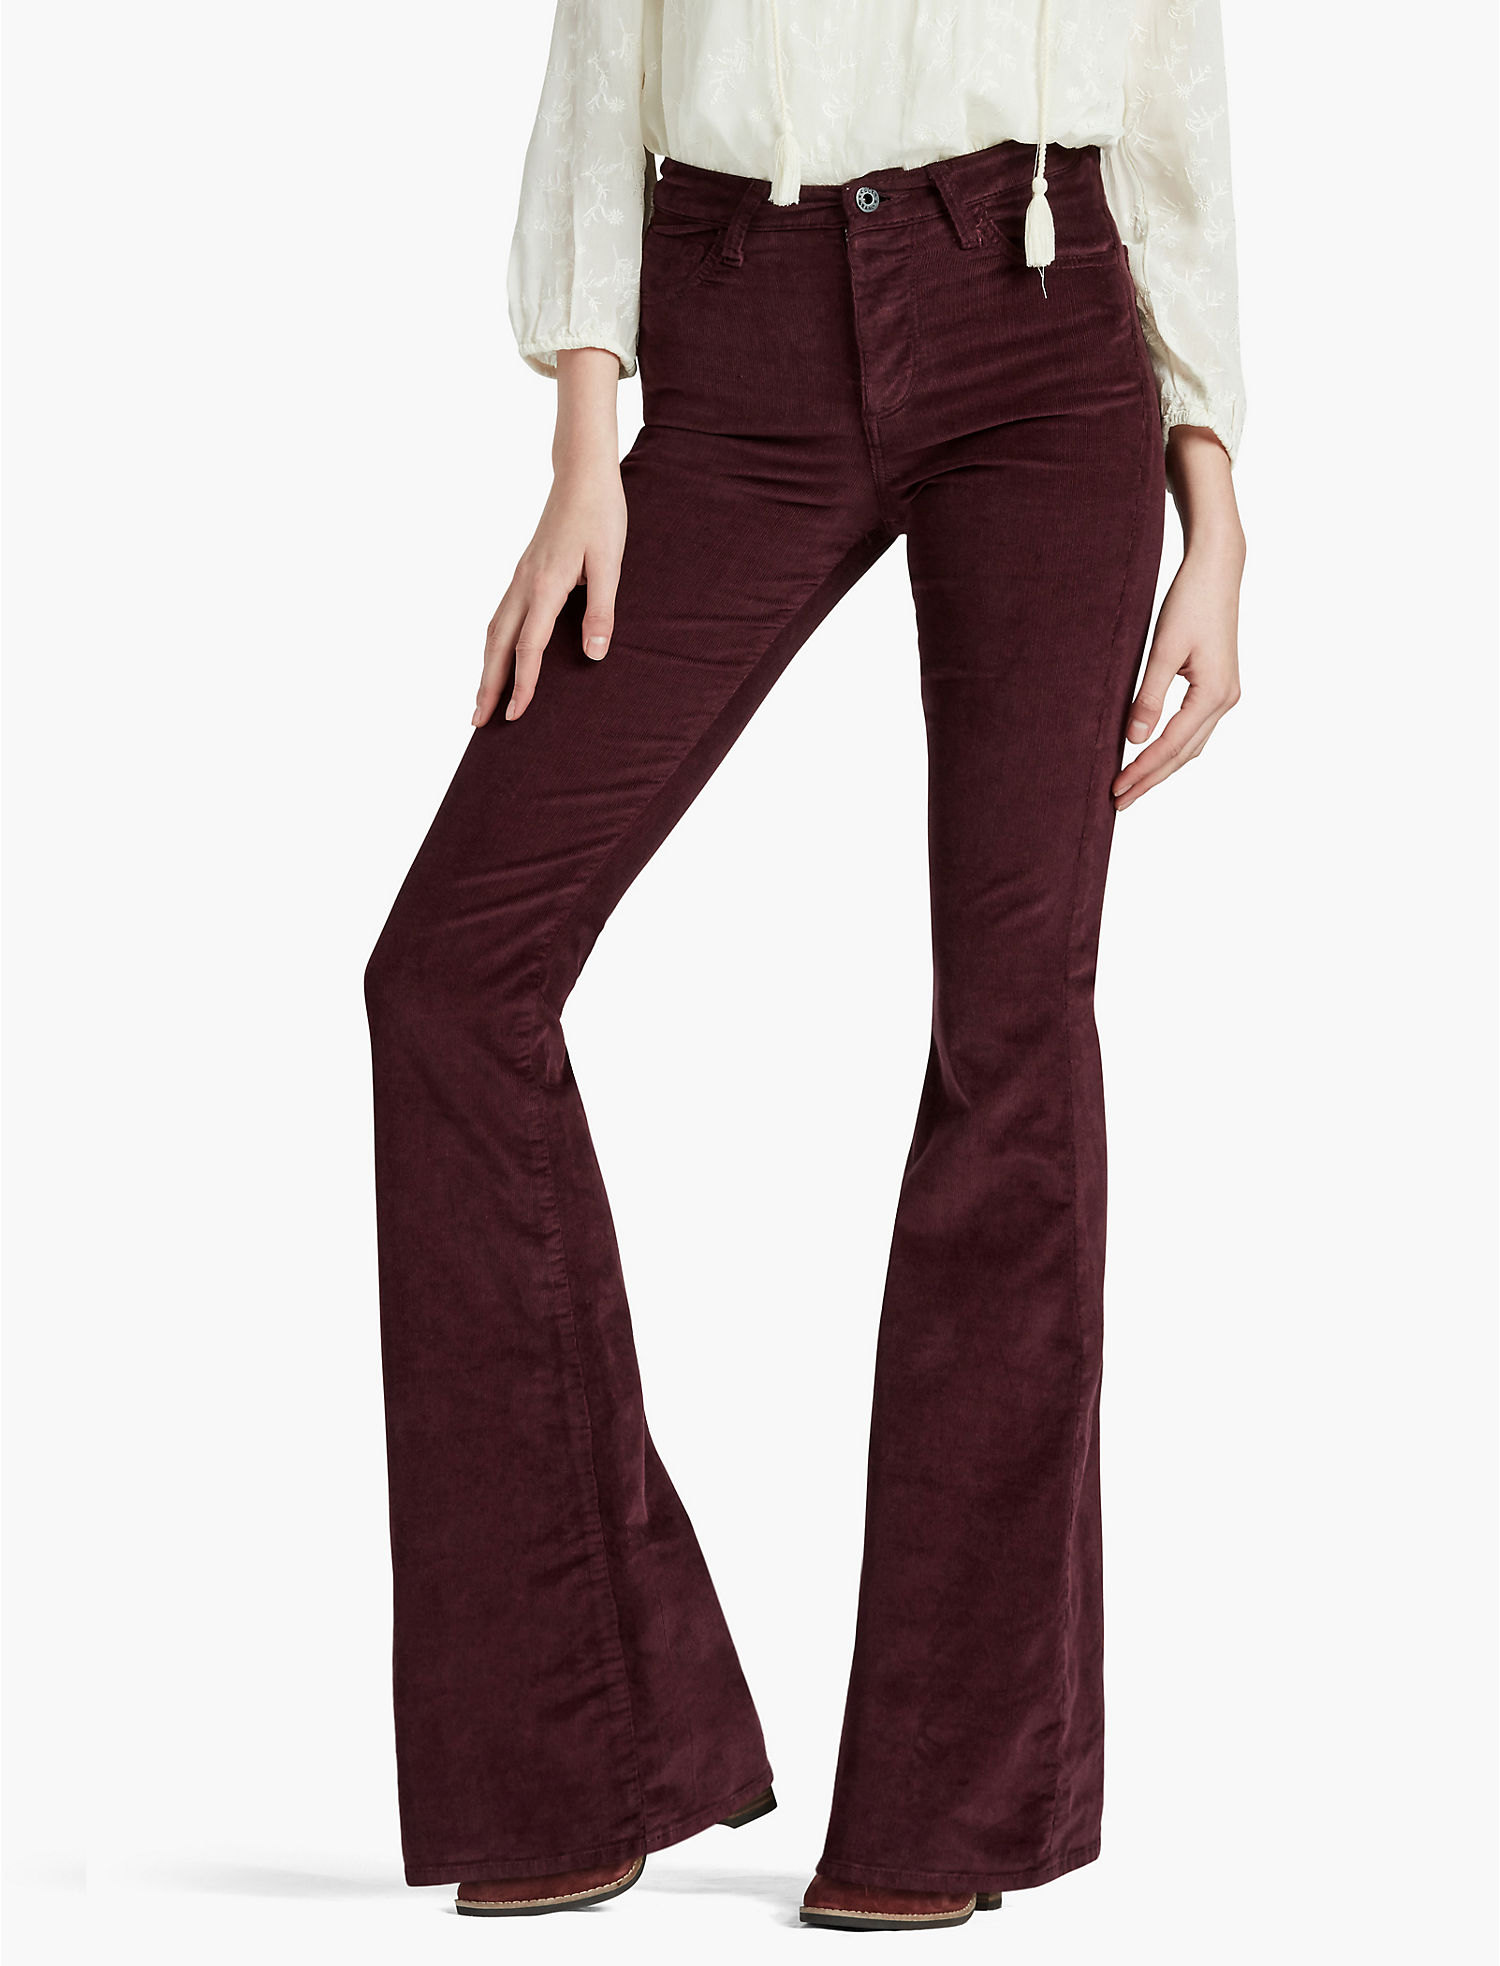 Flare Jeans For Women On Sale | Extra 30% Off Sale Styles | Lucky ...